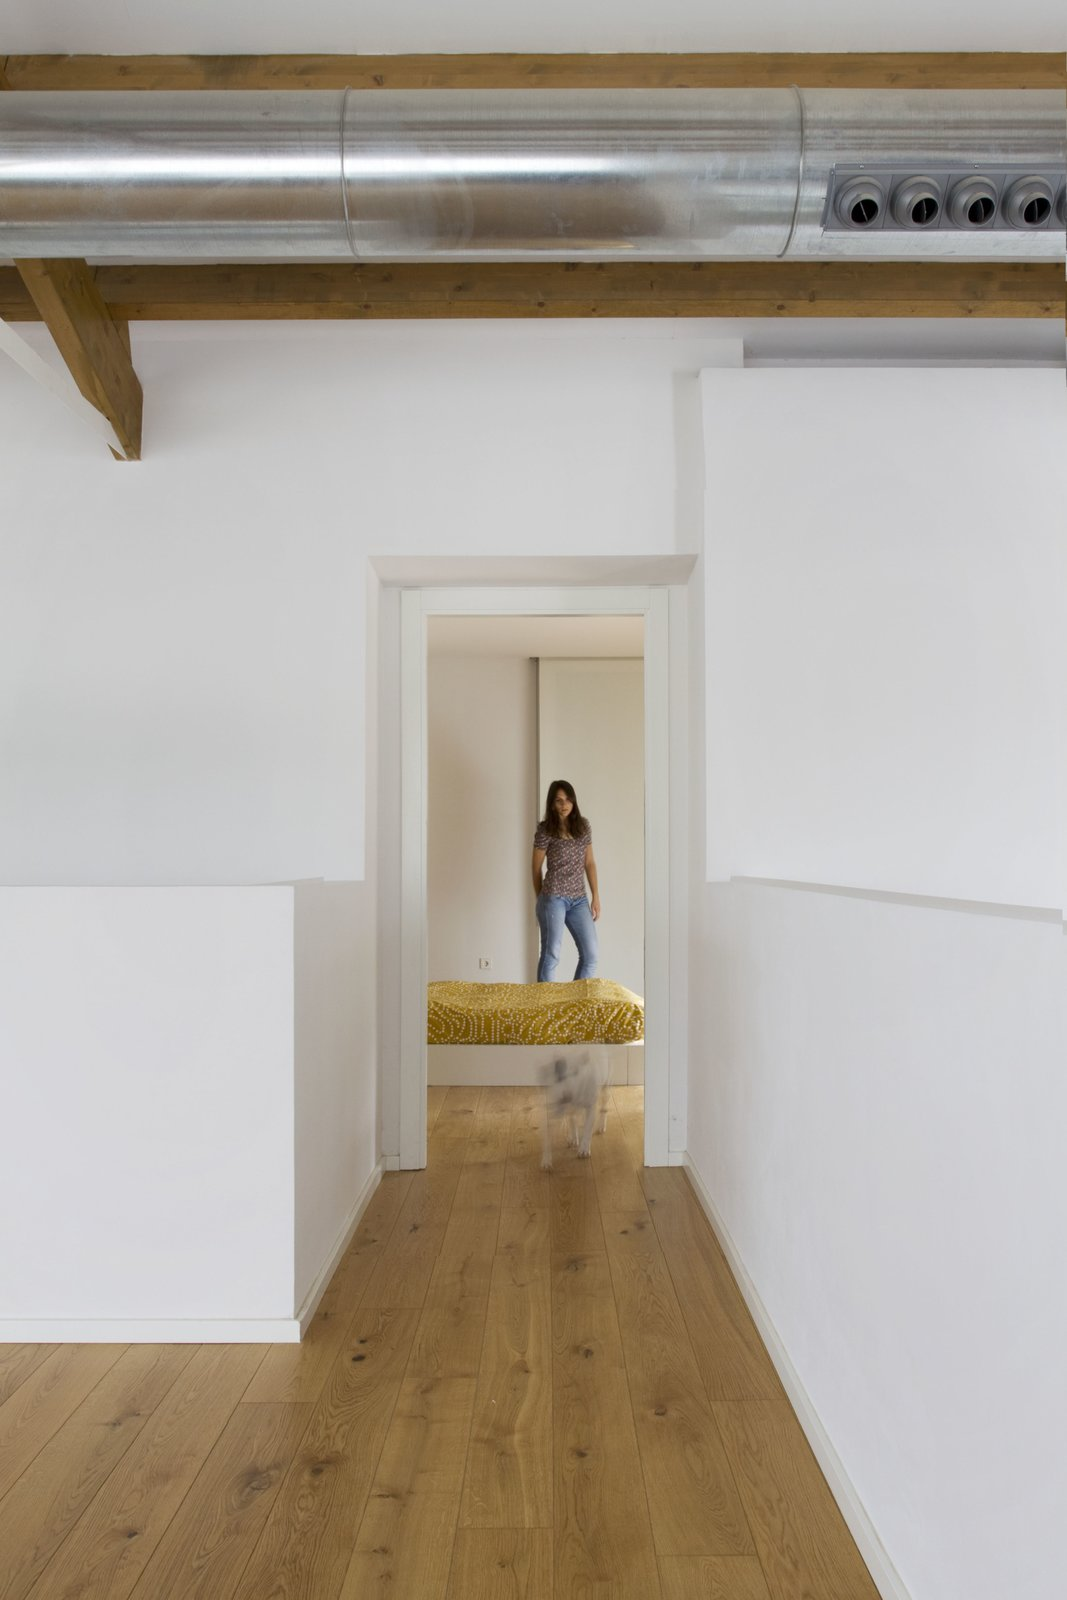 Bedroom, Medium Hardwood Floor, and Bed Polished cement was used for the common areas on the lower level, while wood was used for the more private mezzanine level to create a sense of warmth and intimacy.    Photo 9 of 11 in A Minimalist Mediterranean Home Rises in Rural Spain